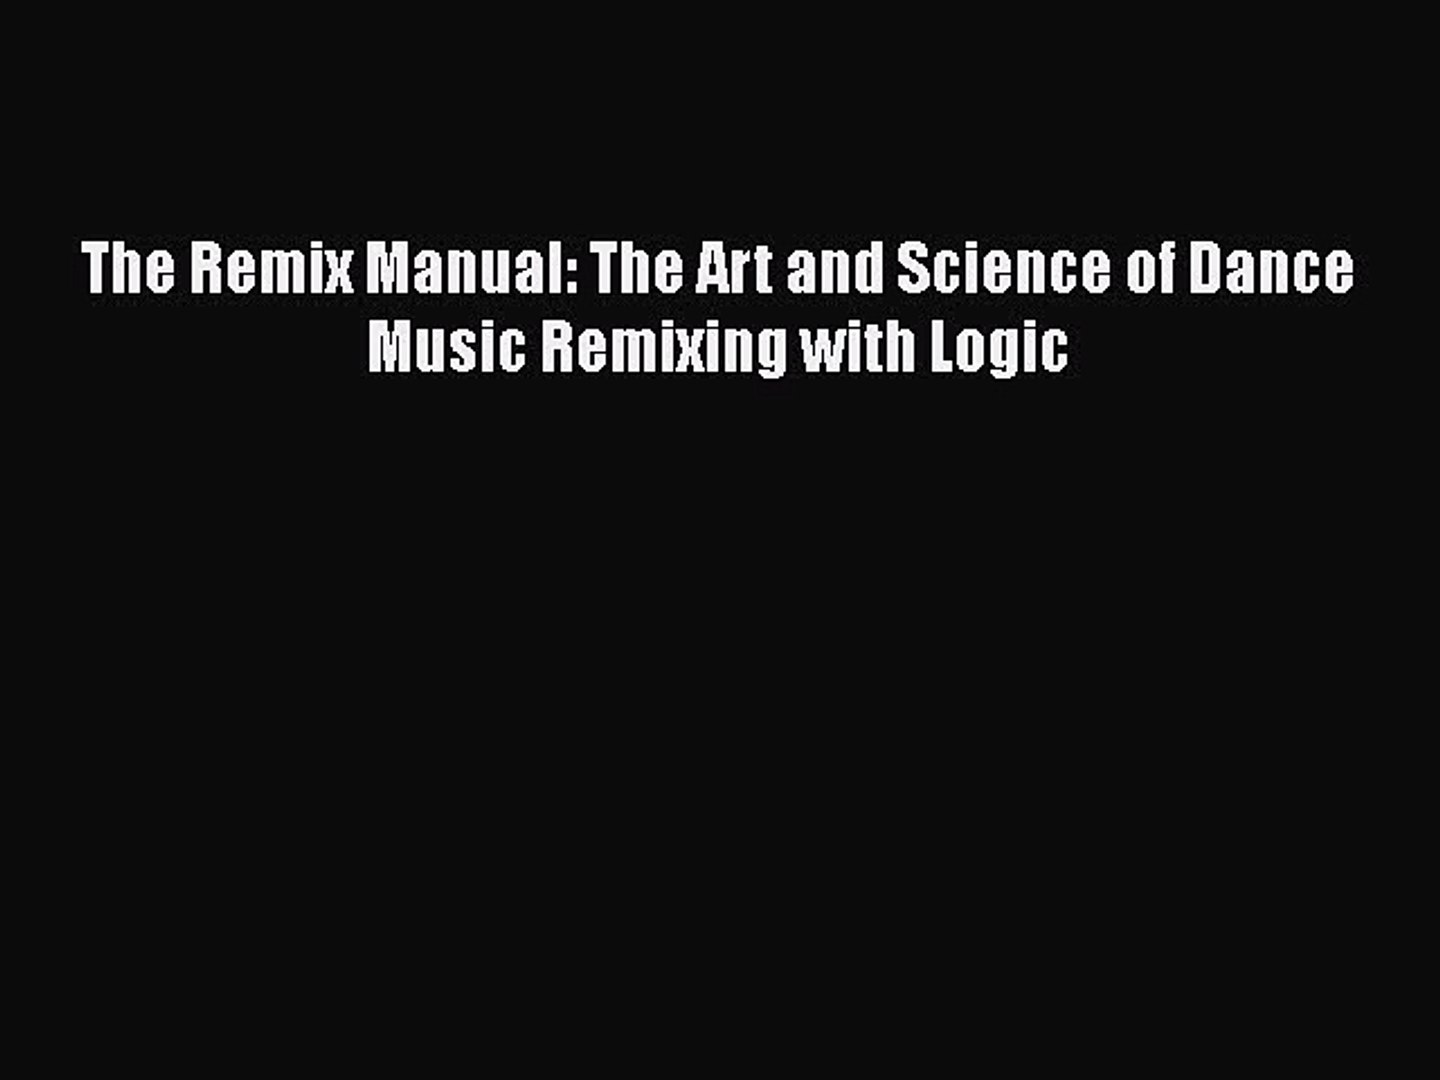 The Remix Manual: The Art and Science of Dance Music Remixing with Logic